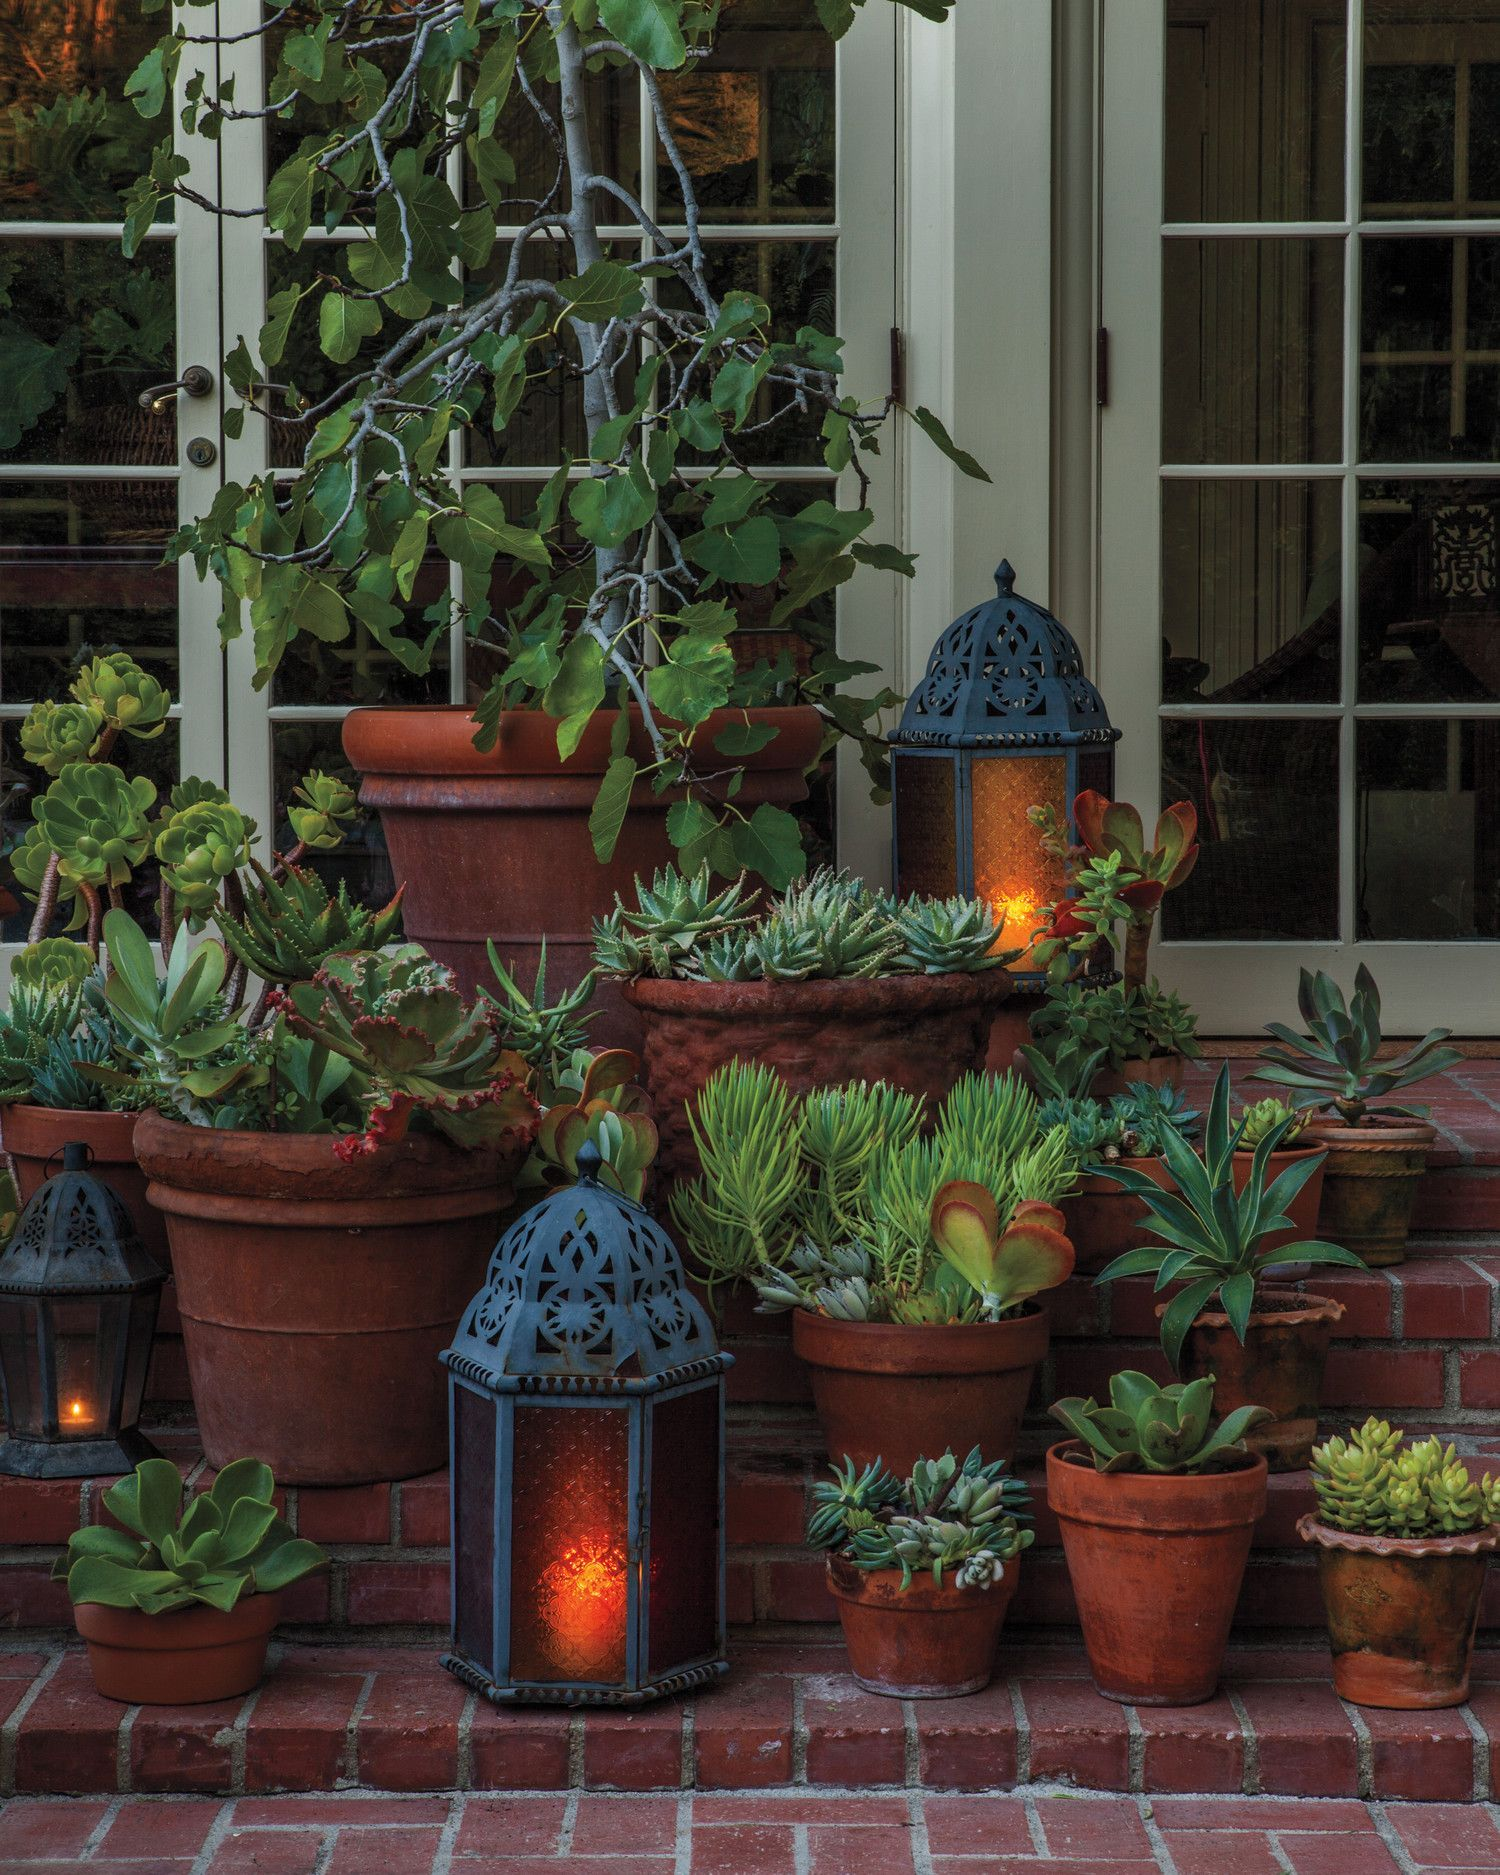 These Decorative Flower Pots and Planters Will Make Your Plants Pop is part of Vegetable garden design, Moroccan garden, Garden design, Garden boxes, Garden containers, Flower pots - Whether you're into ceramic pots, brass bases, or a particular color scheme, there's something here for every avid gardener